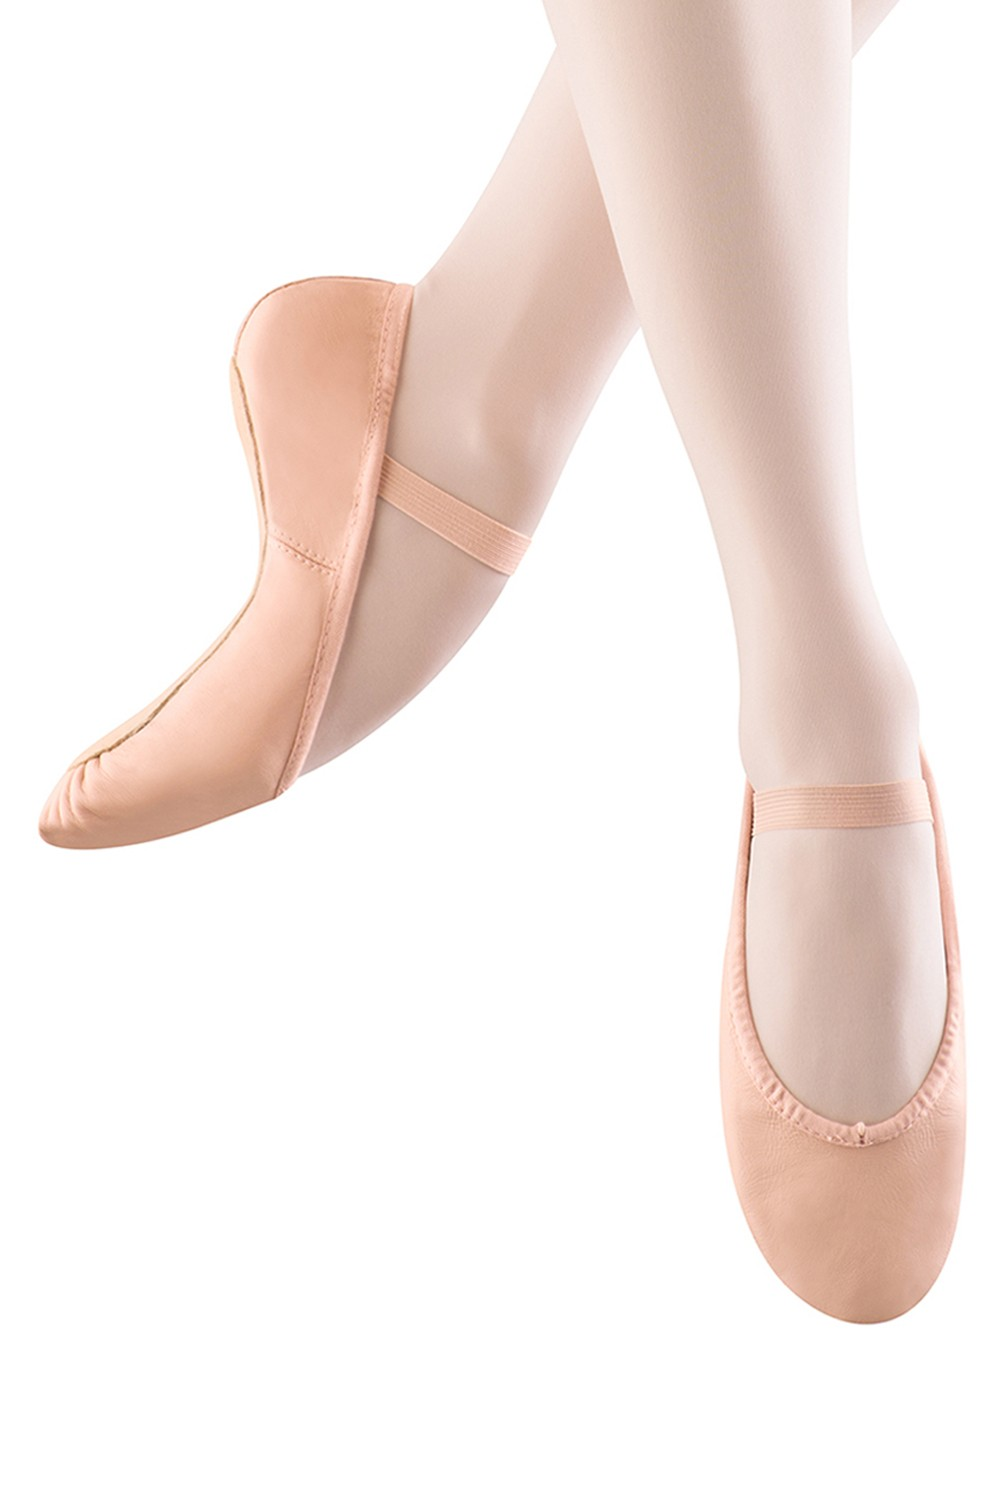 Dansoft - Enfant Girl's Ballet Shoes